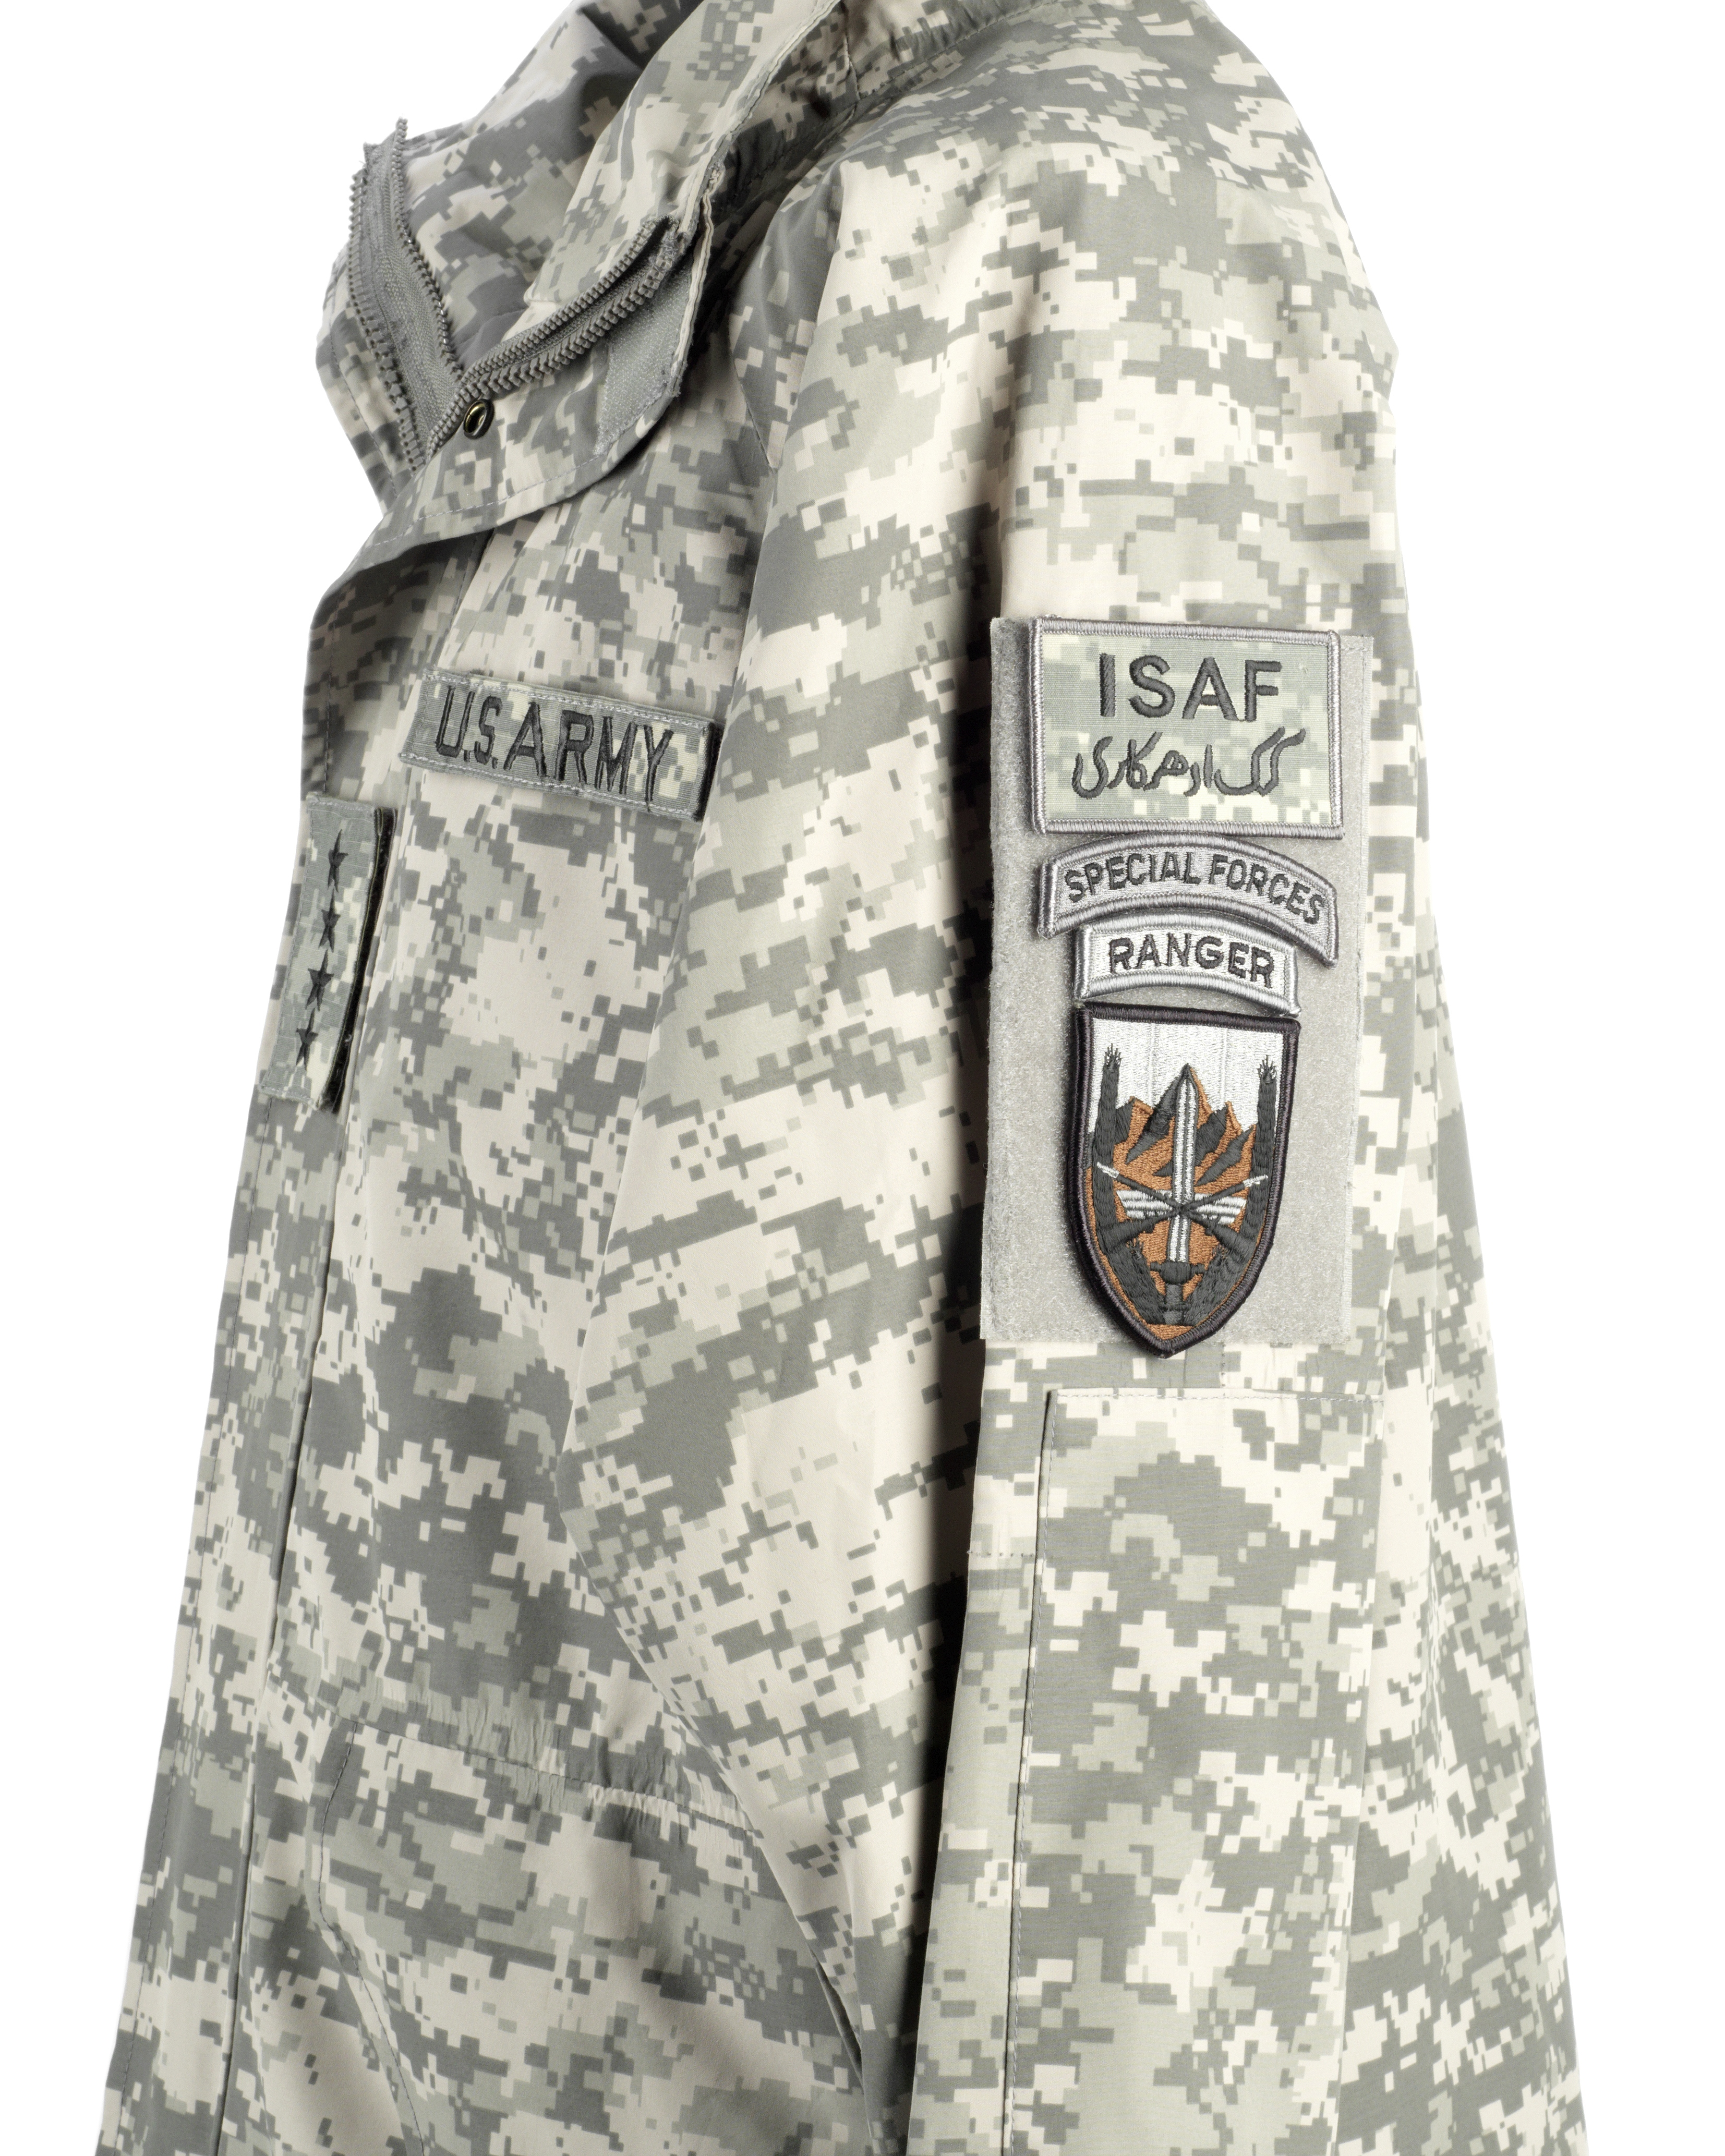 Lot 23 - Brad Pitt: A military-style camouflage raincoat worn by Brad Pitt for his role as 'Glen McMahon' ...